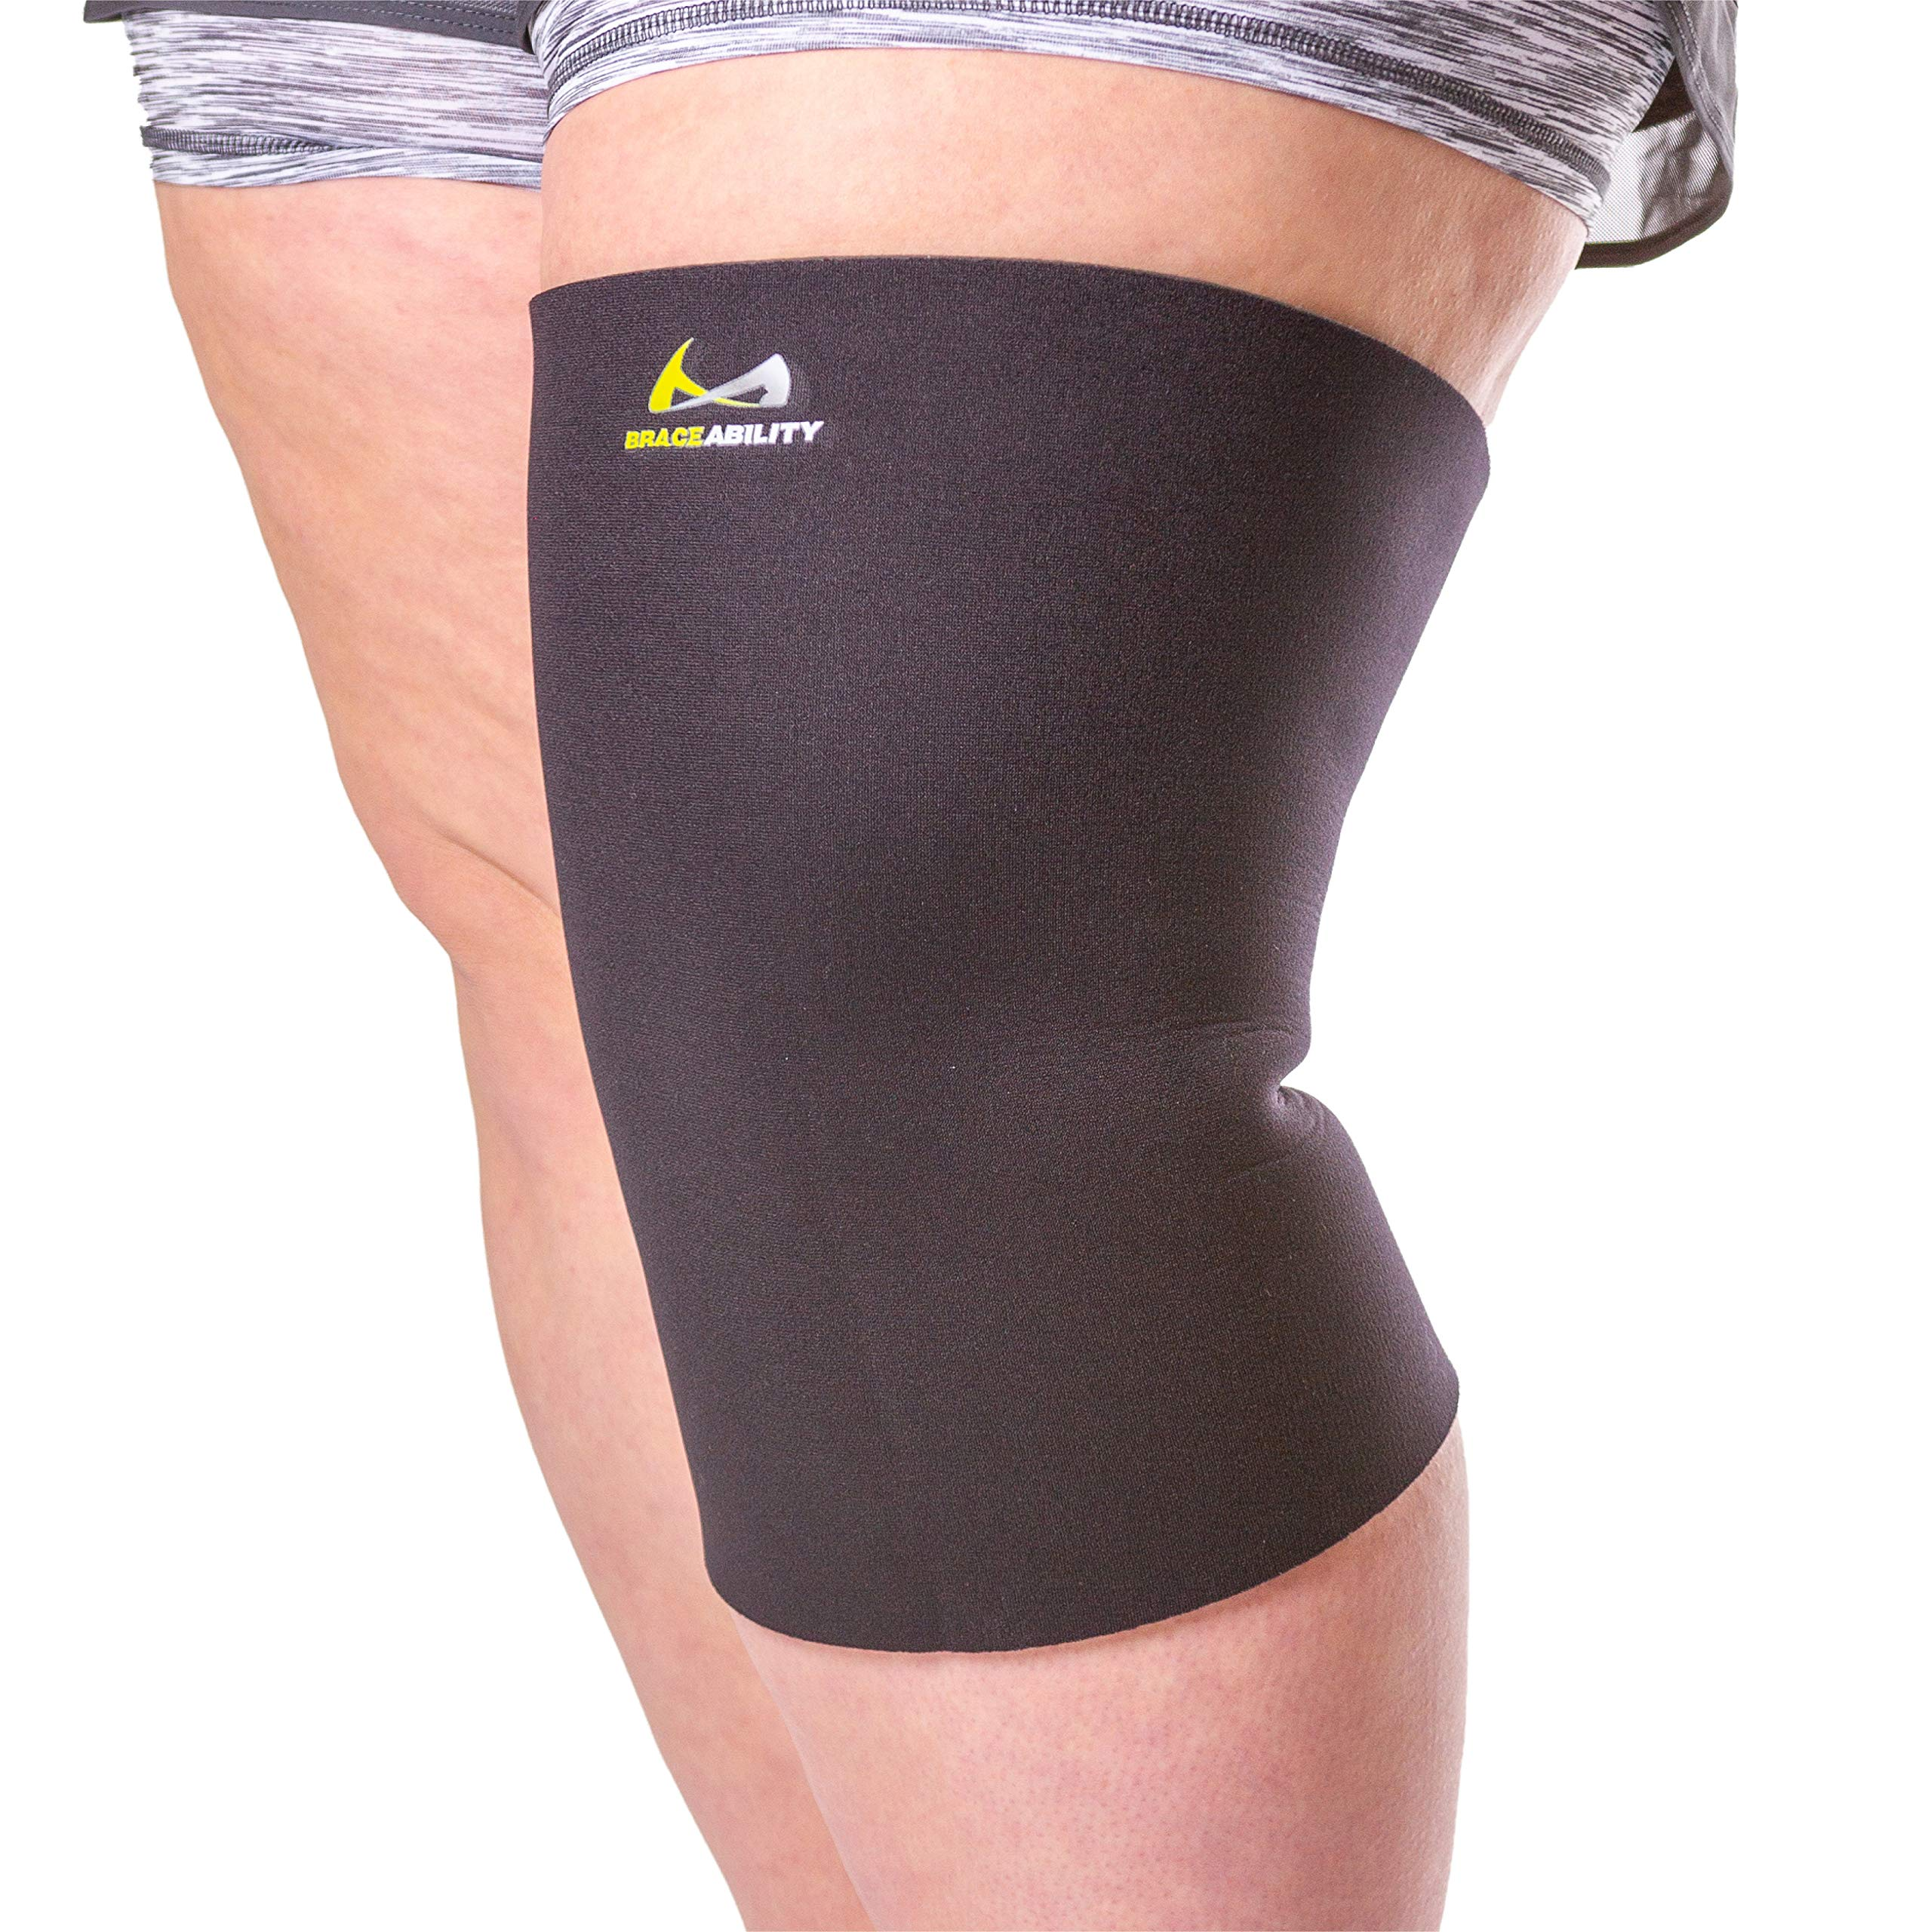 BraceAbility Plus Size Neoprene Knee Sleeve | XXL Compression Support Brace for Bariatric Women & Men with Big Thighs & Arthritis Joint Pain (2XL Wide Calf)